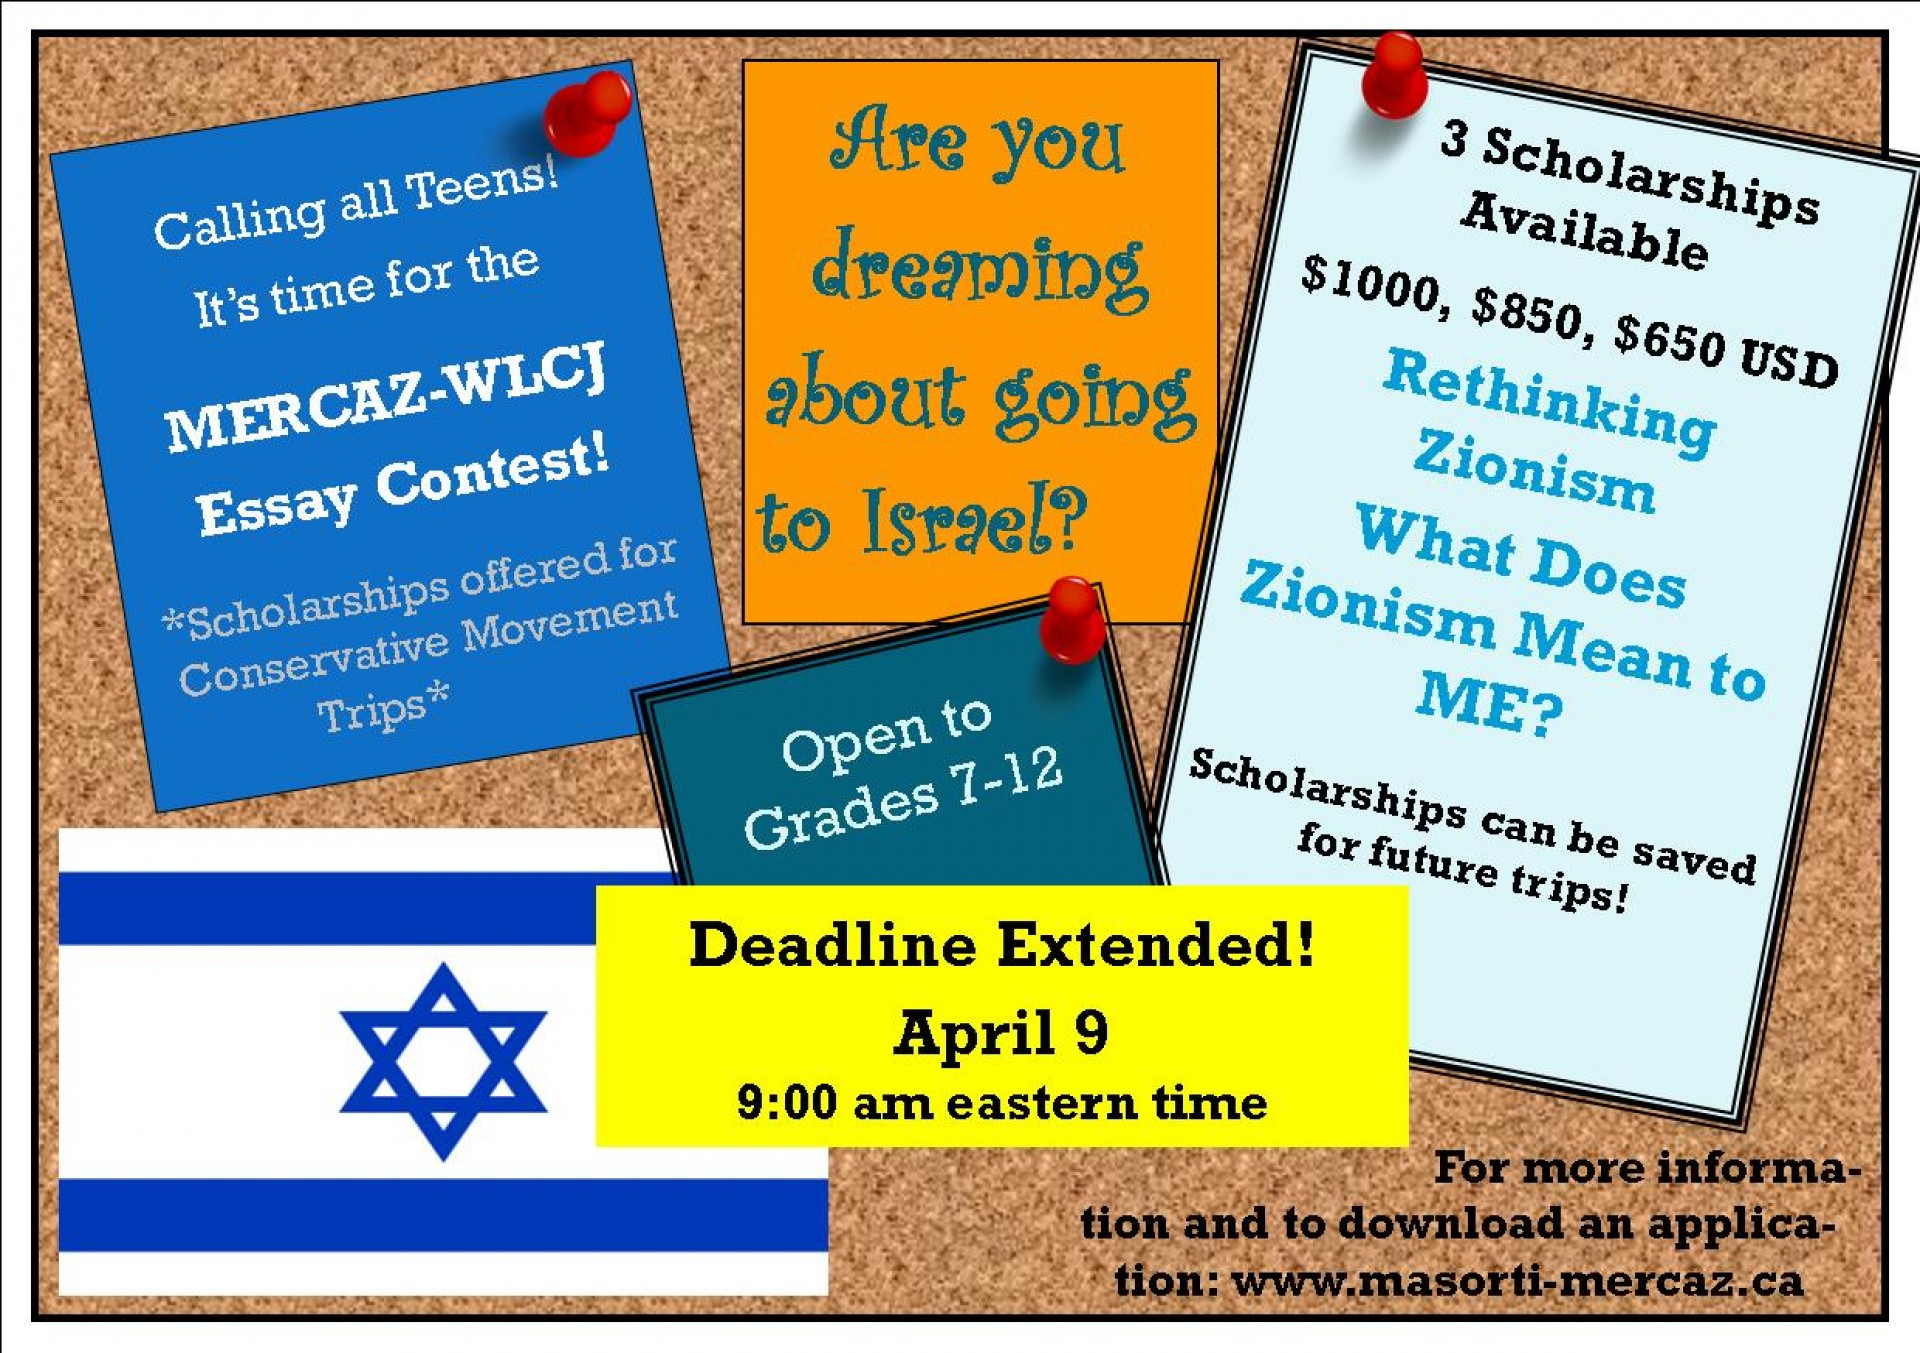 010 Essay Contest Flyer Half Page Extended Example Astounding Scholarship Contests For High School Students 2019 Middle 1920